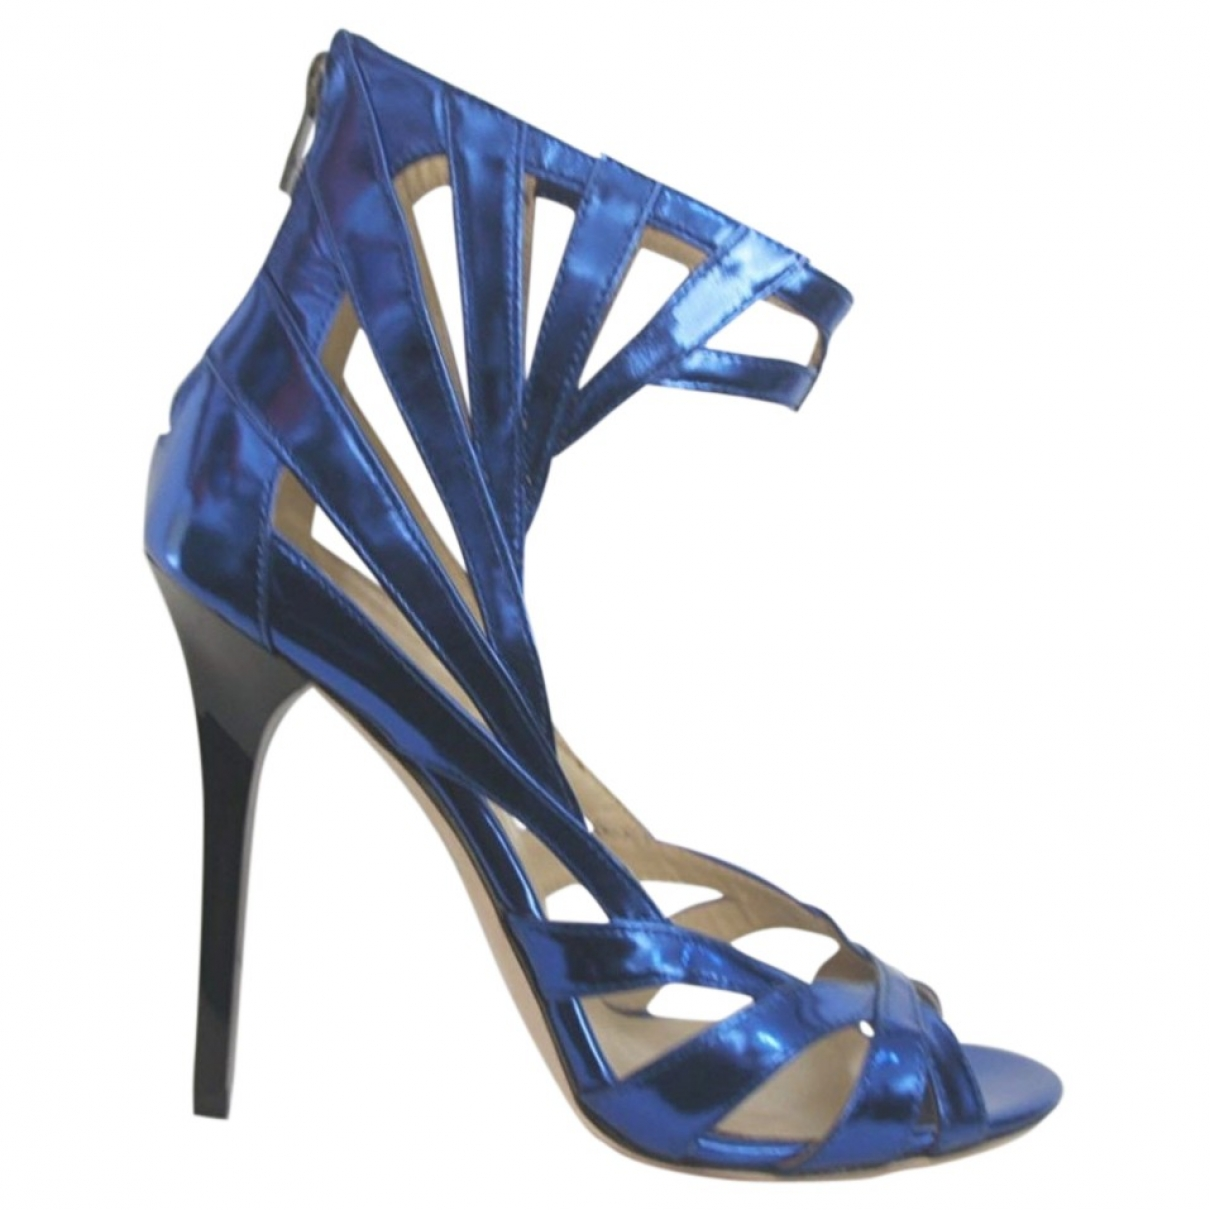 Jimmy Choo For H&m \N Blue Leather Sandals for Women 40 EU